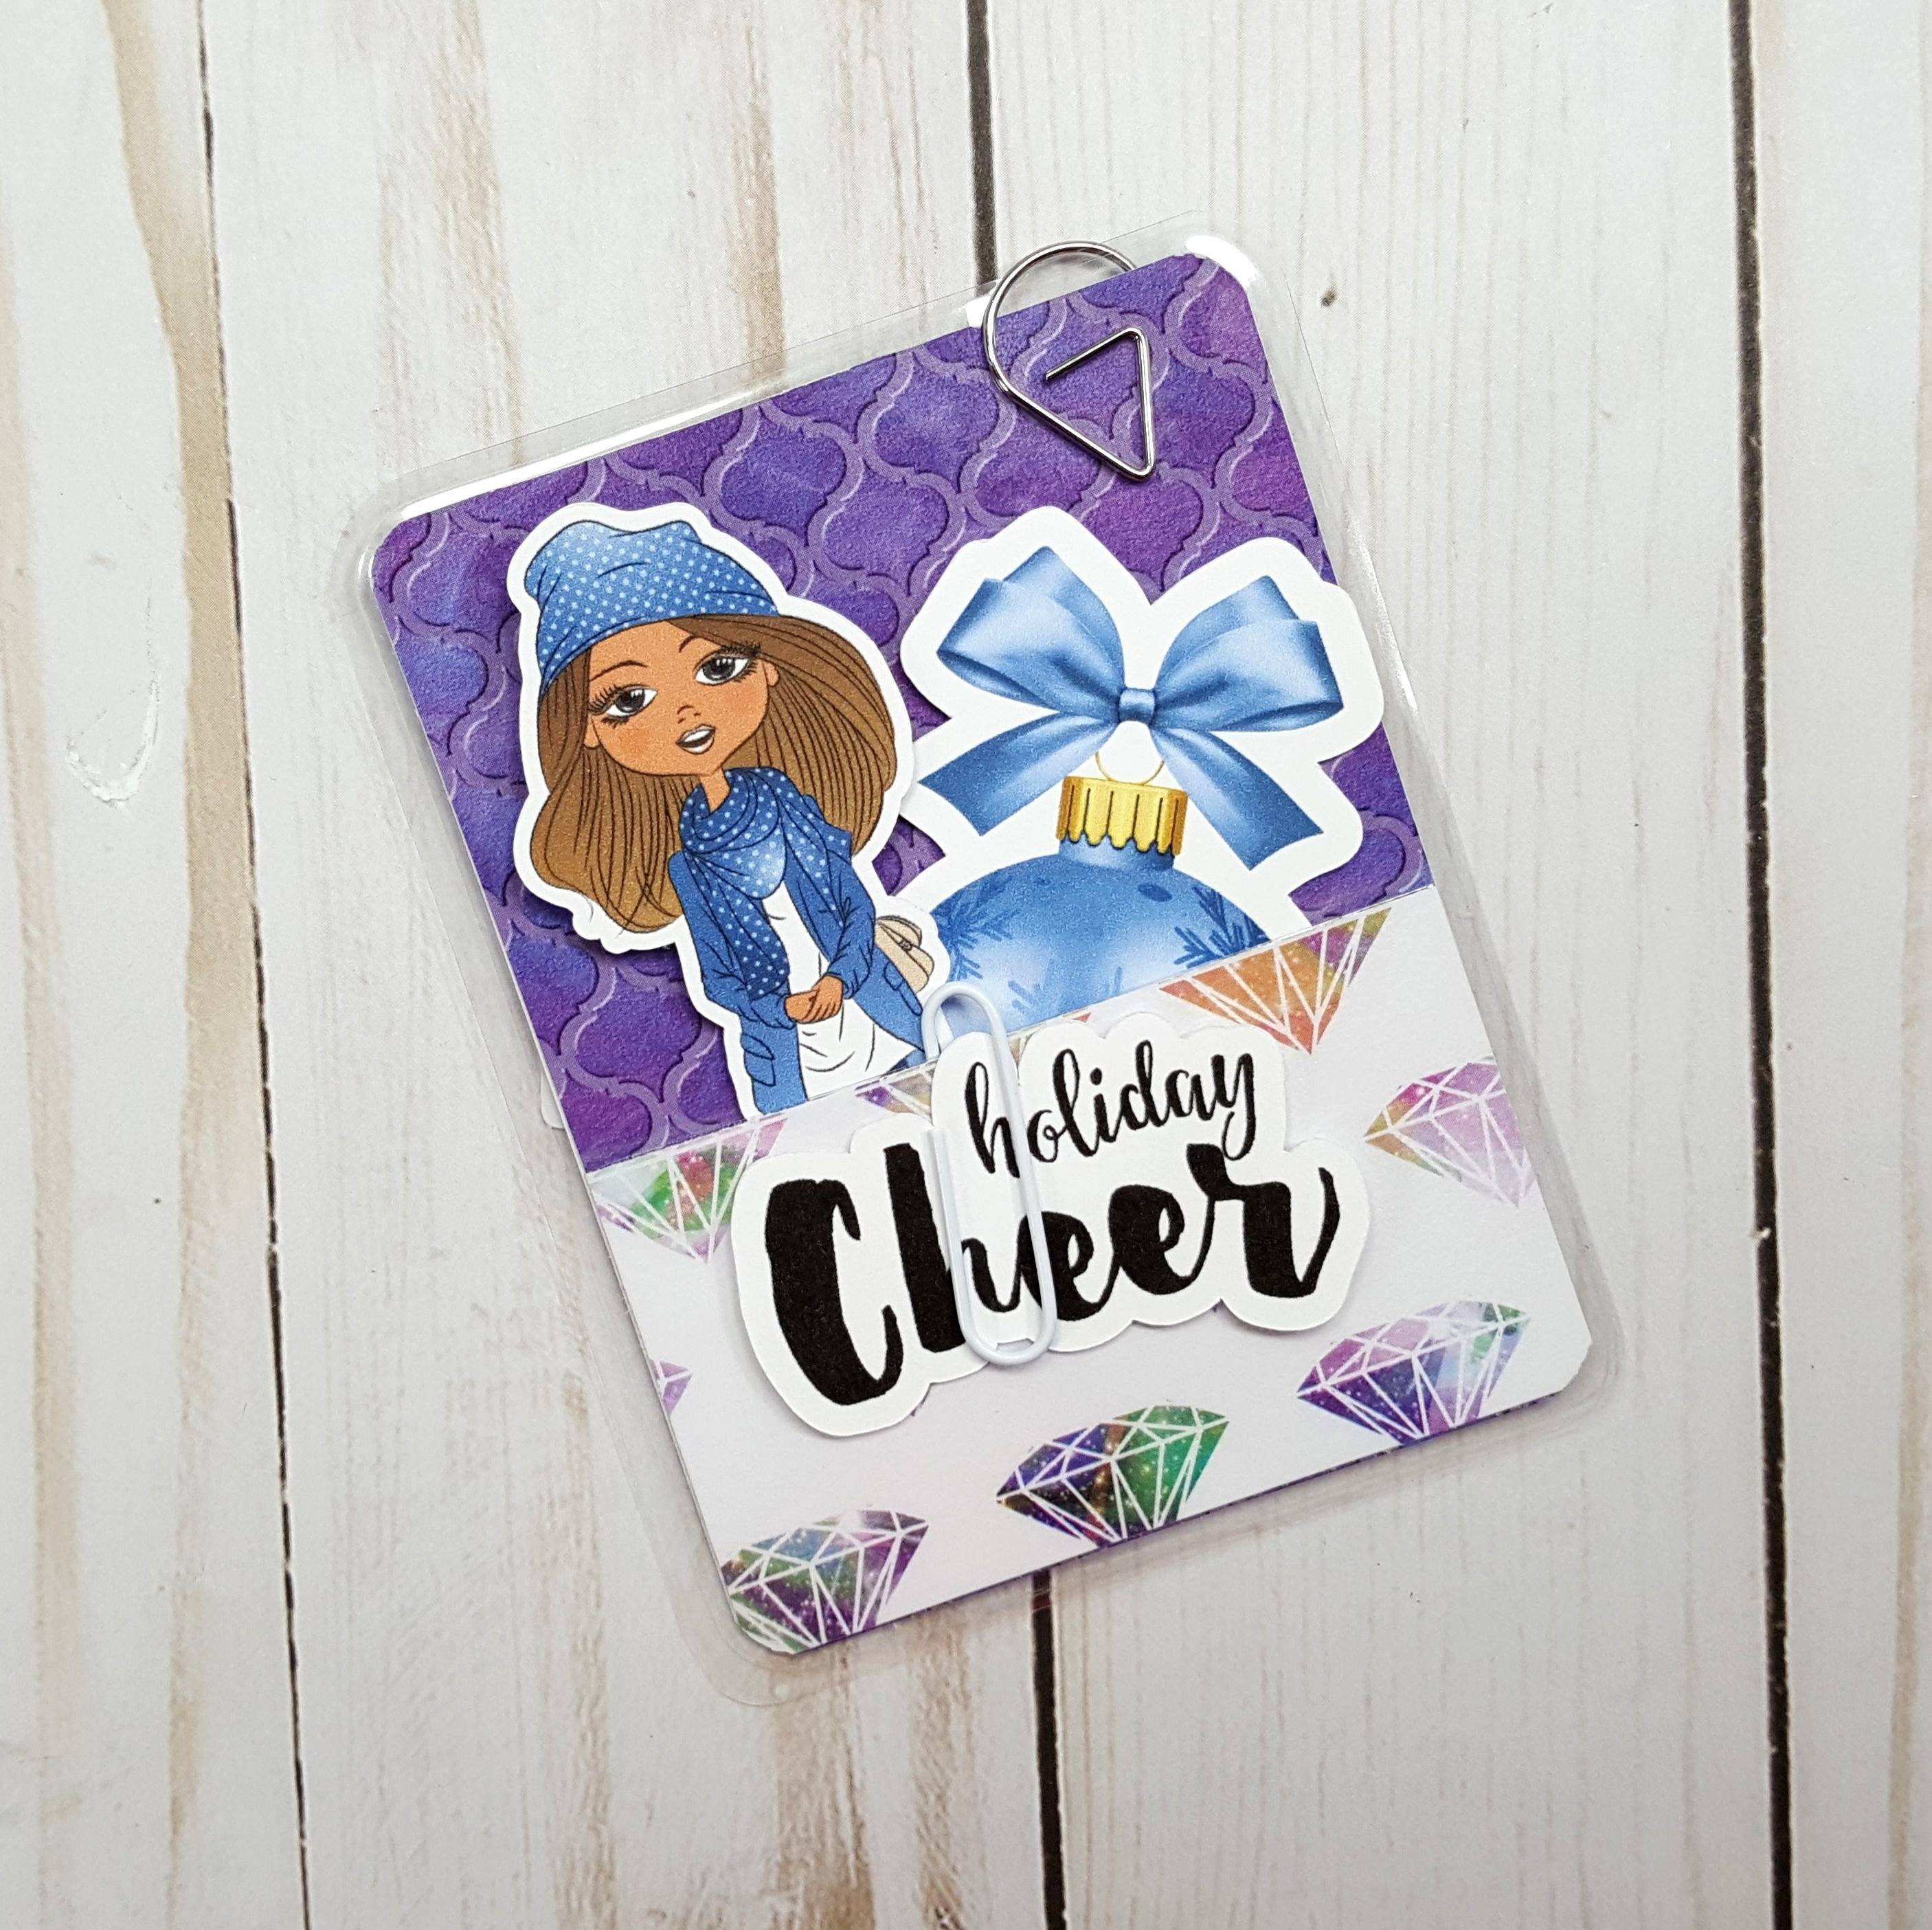 Holiday Cheer Diamond Micro Size Loaded Page Marker 20171125-01